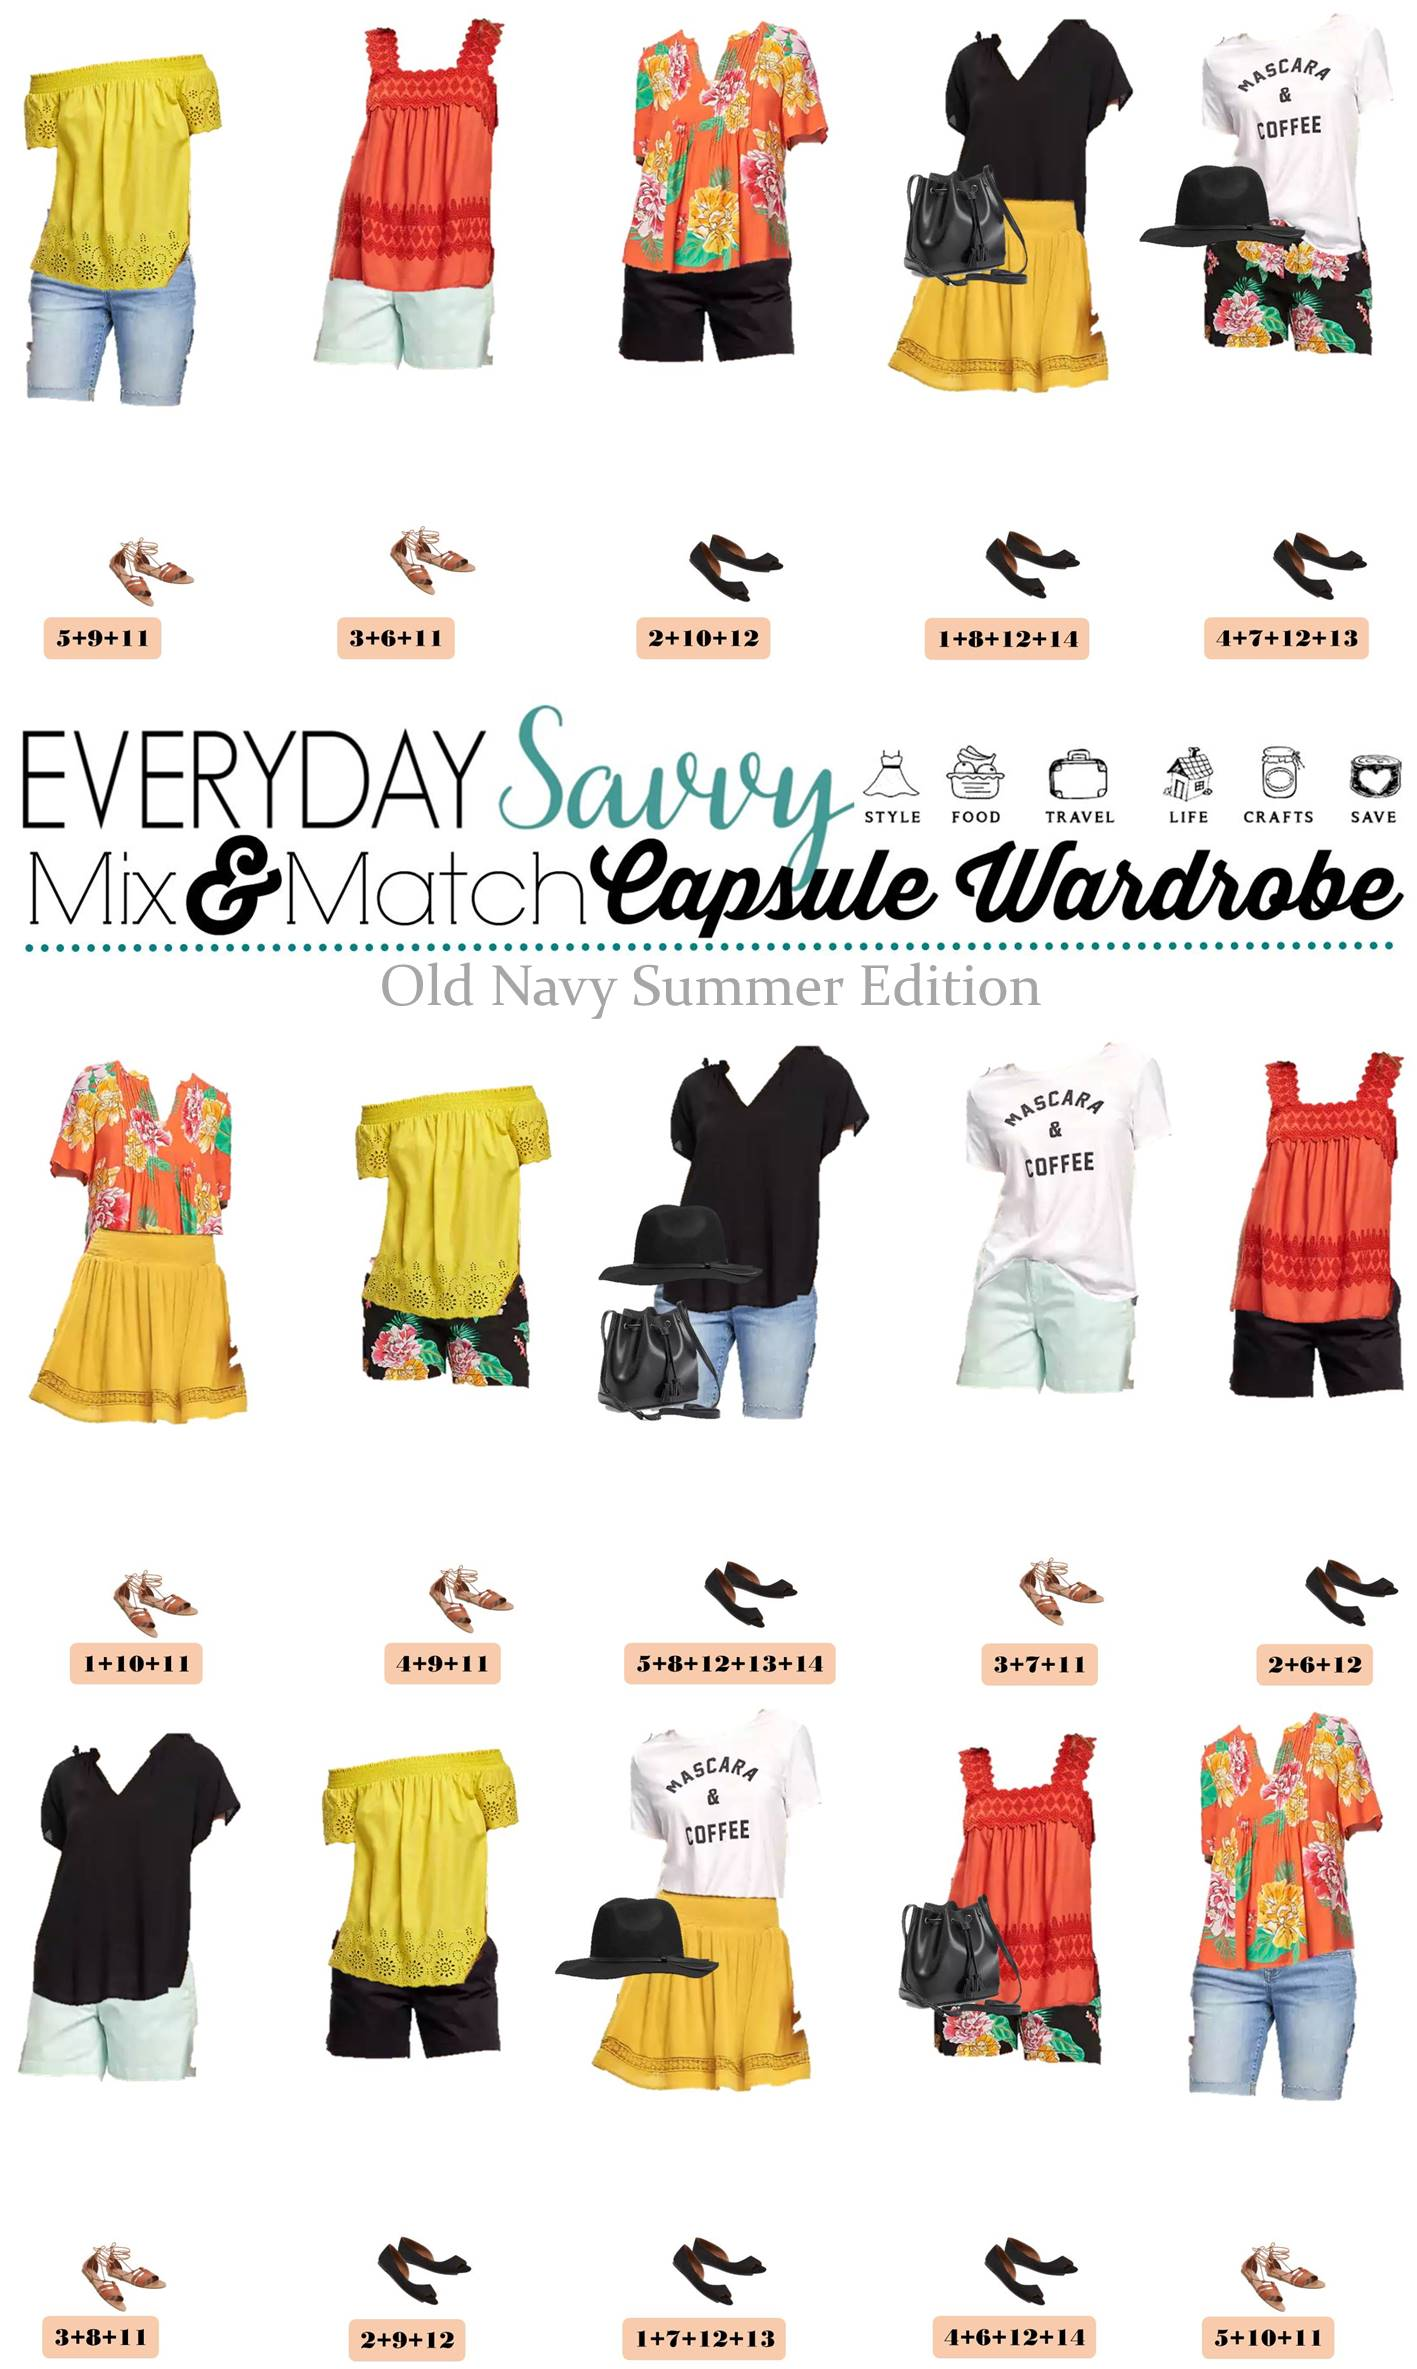 Old Navy Summer Capsule Wardrobe Mix And Match Outfits